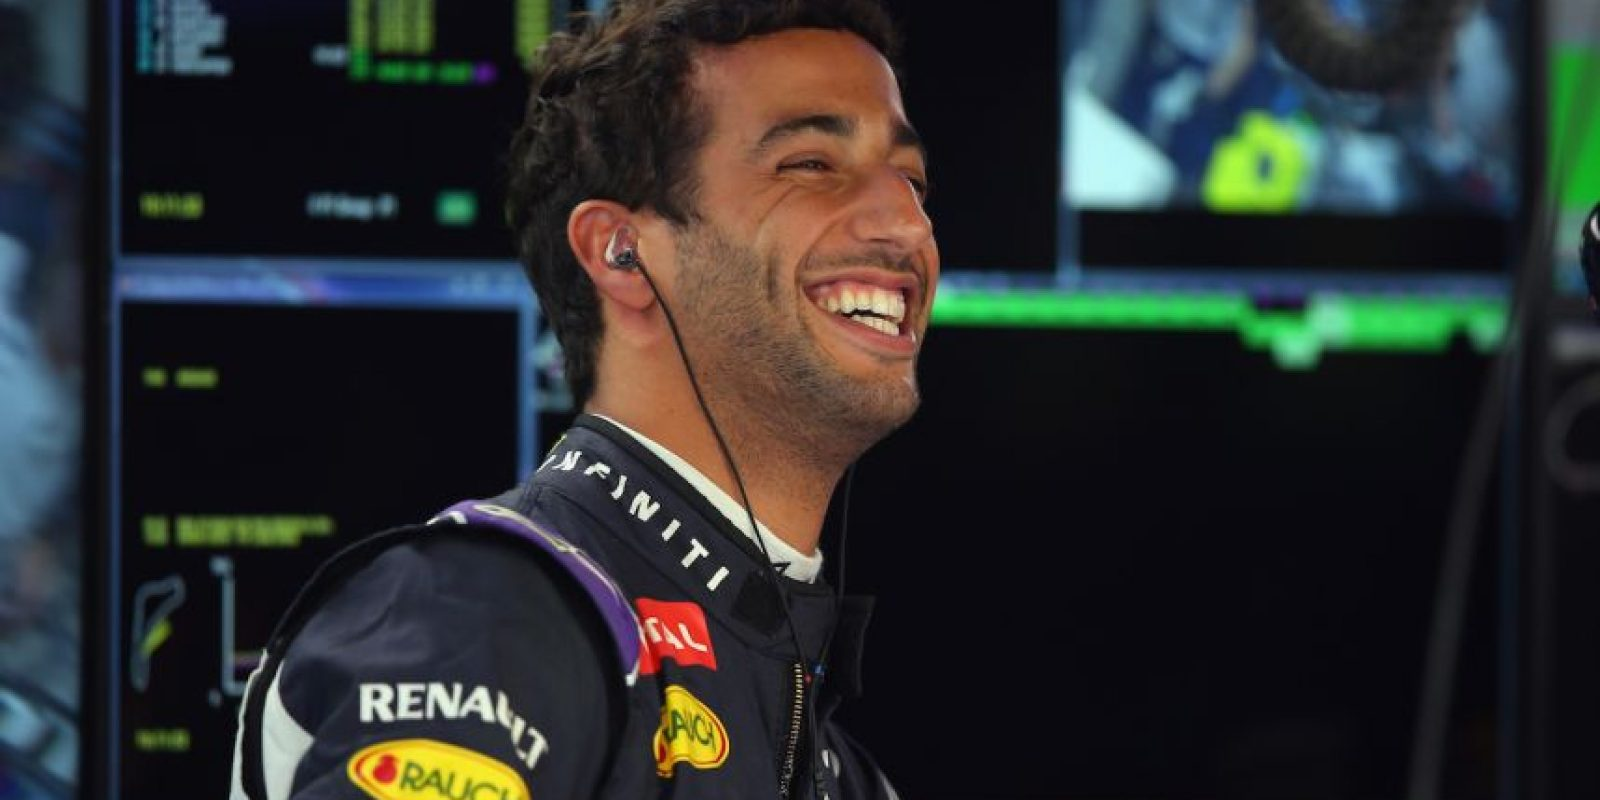 8. Daniel Ricciardo (Red Bull) = 55 puntos. Foto: Getty Images